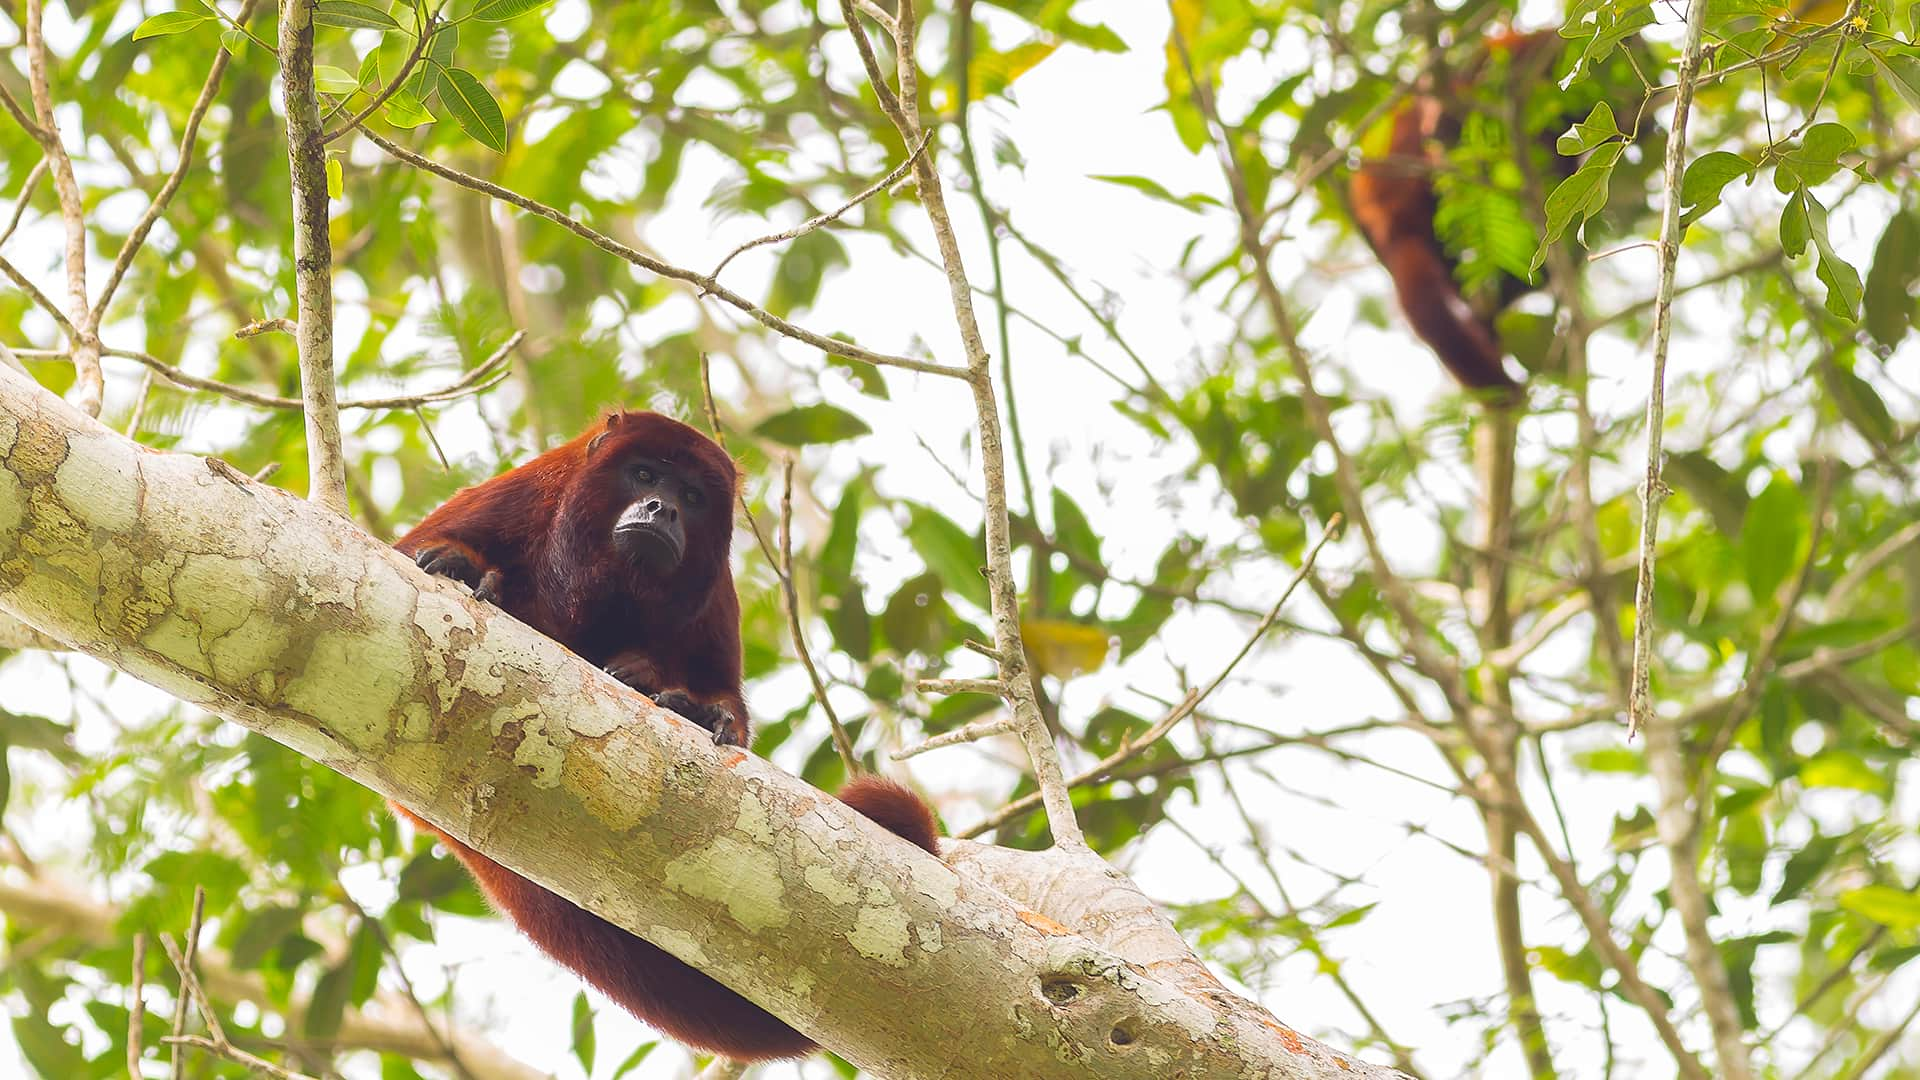 11Red howler monkey looking at us with curiosity | Responsible Travel Peru